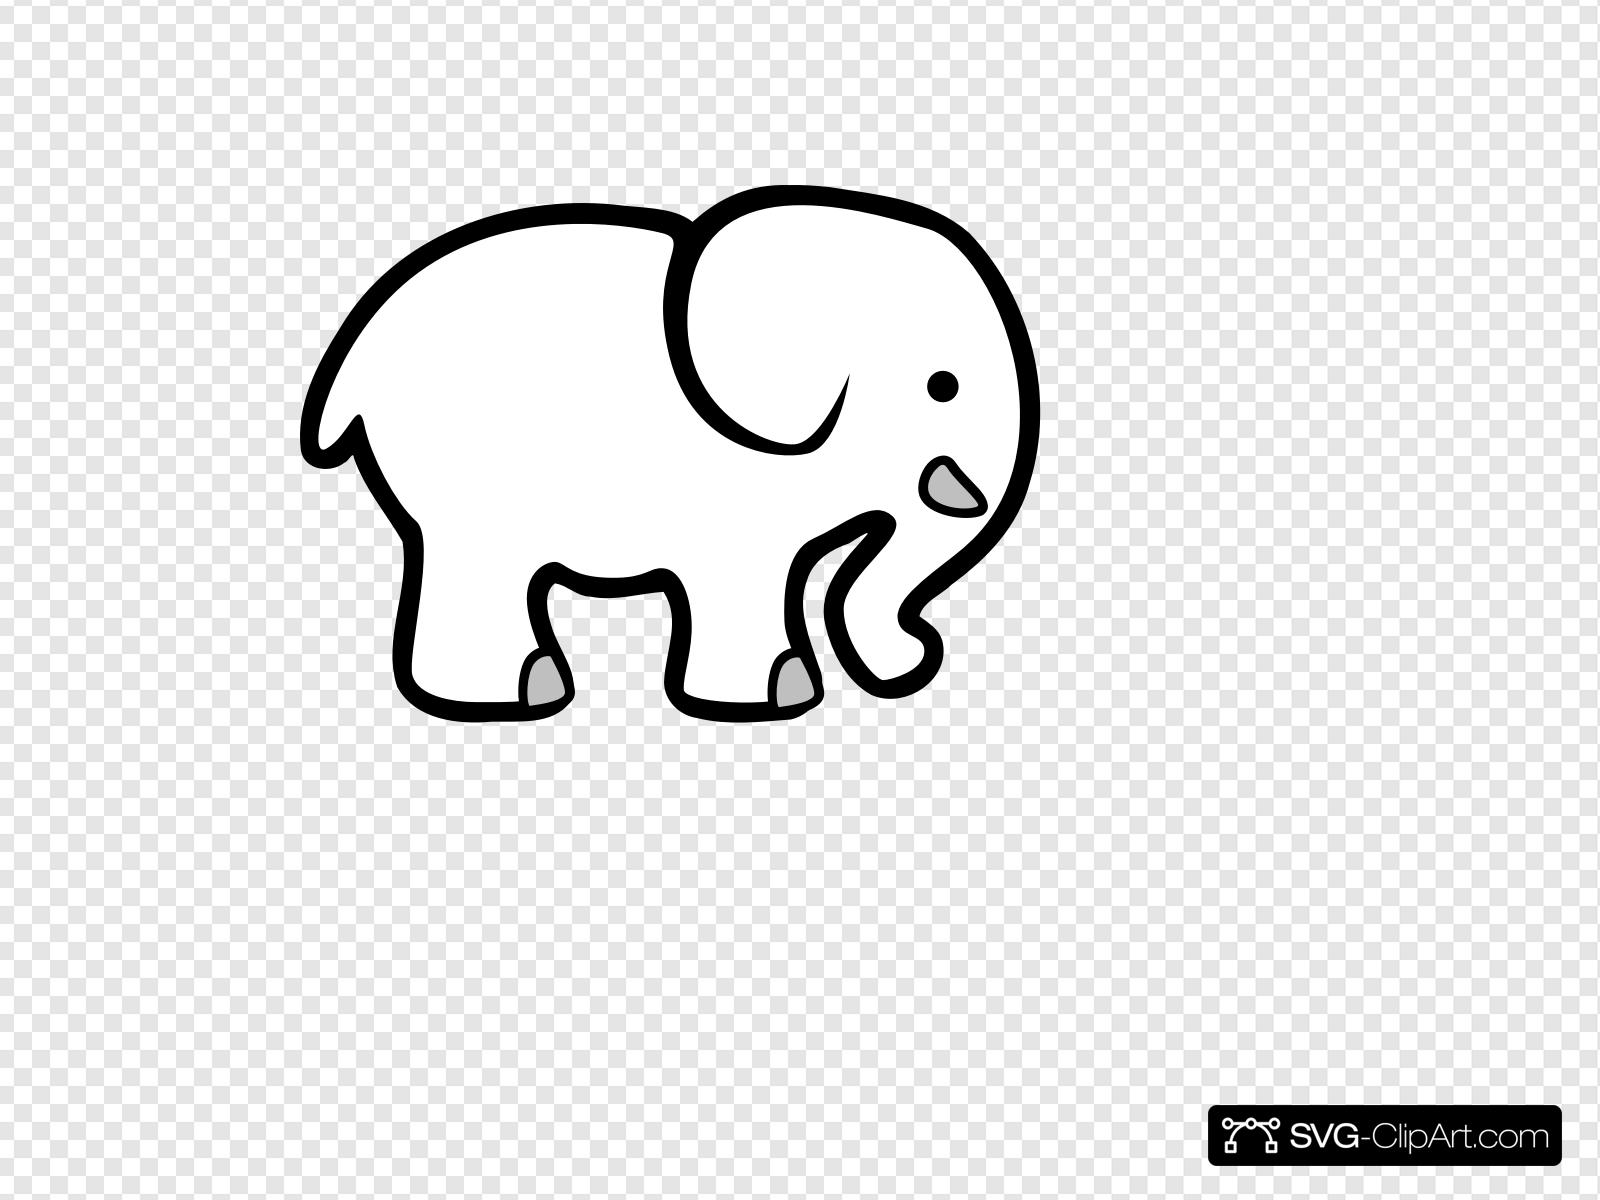 White Elephant Clip art, Icon and SVG.